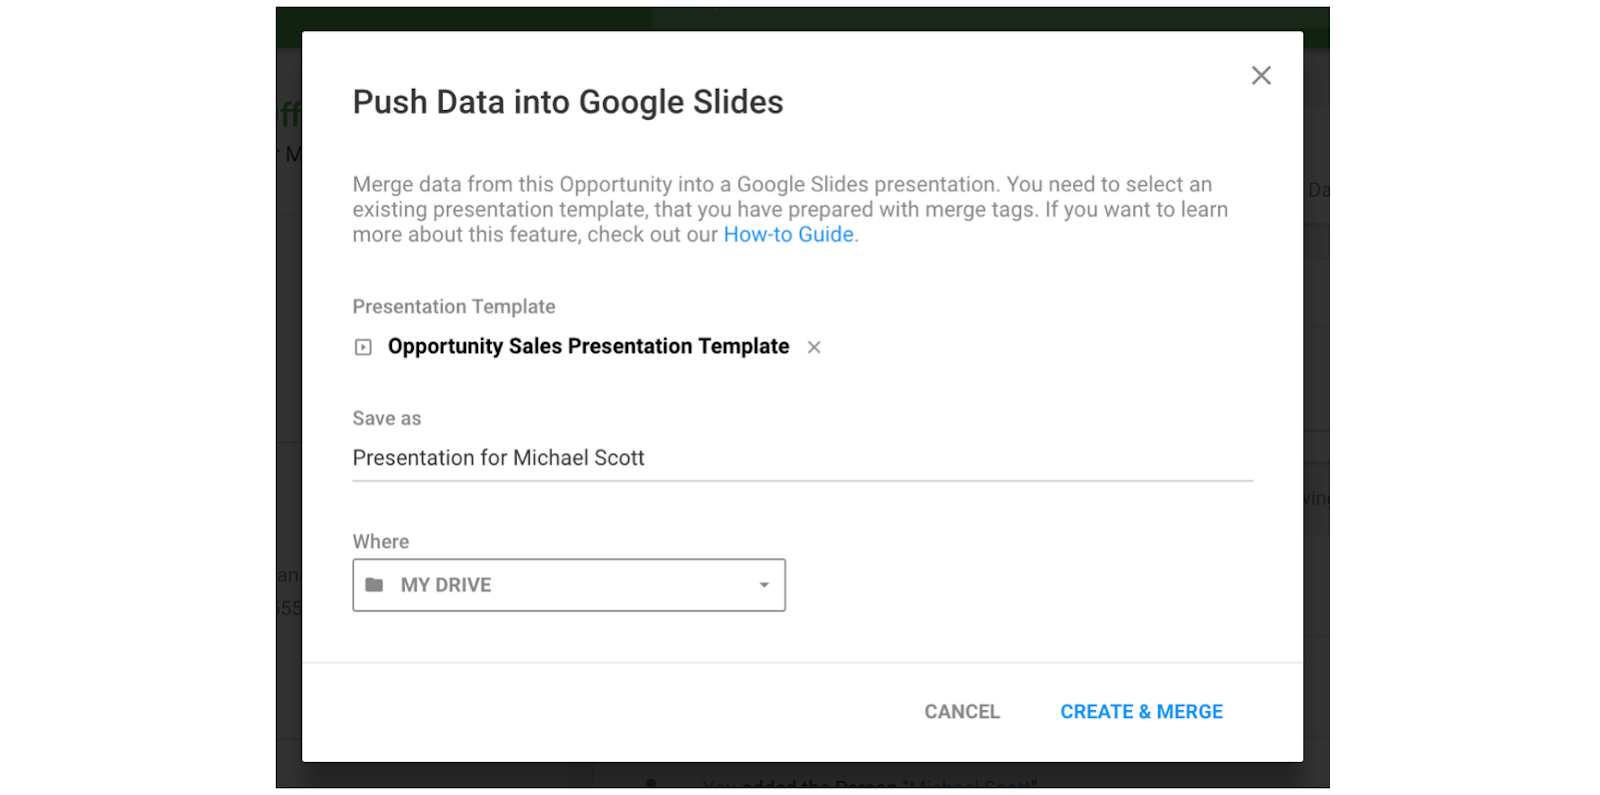 pushing data into google slides